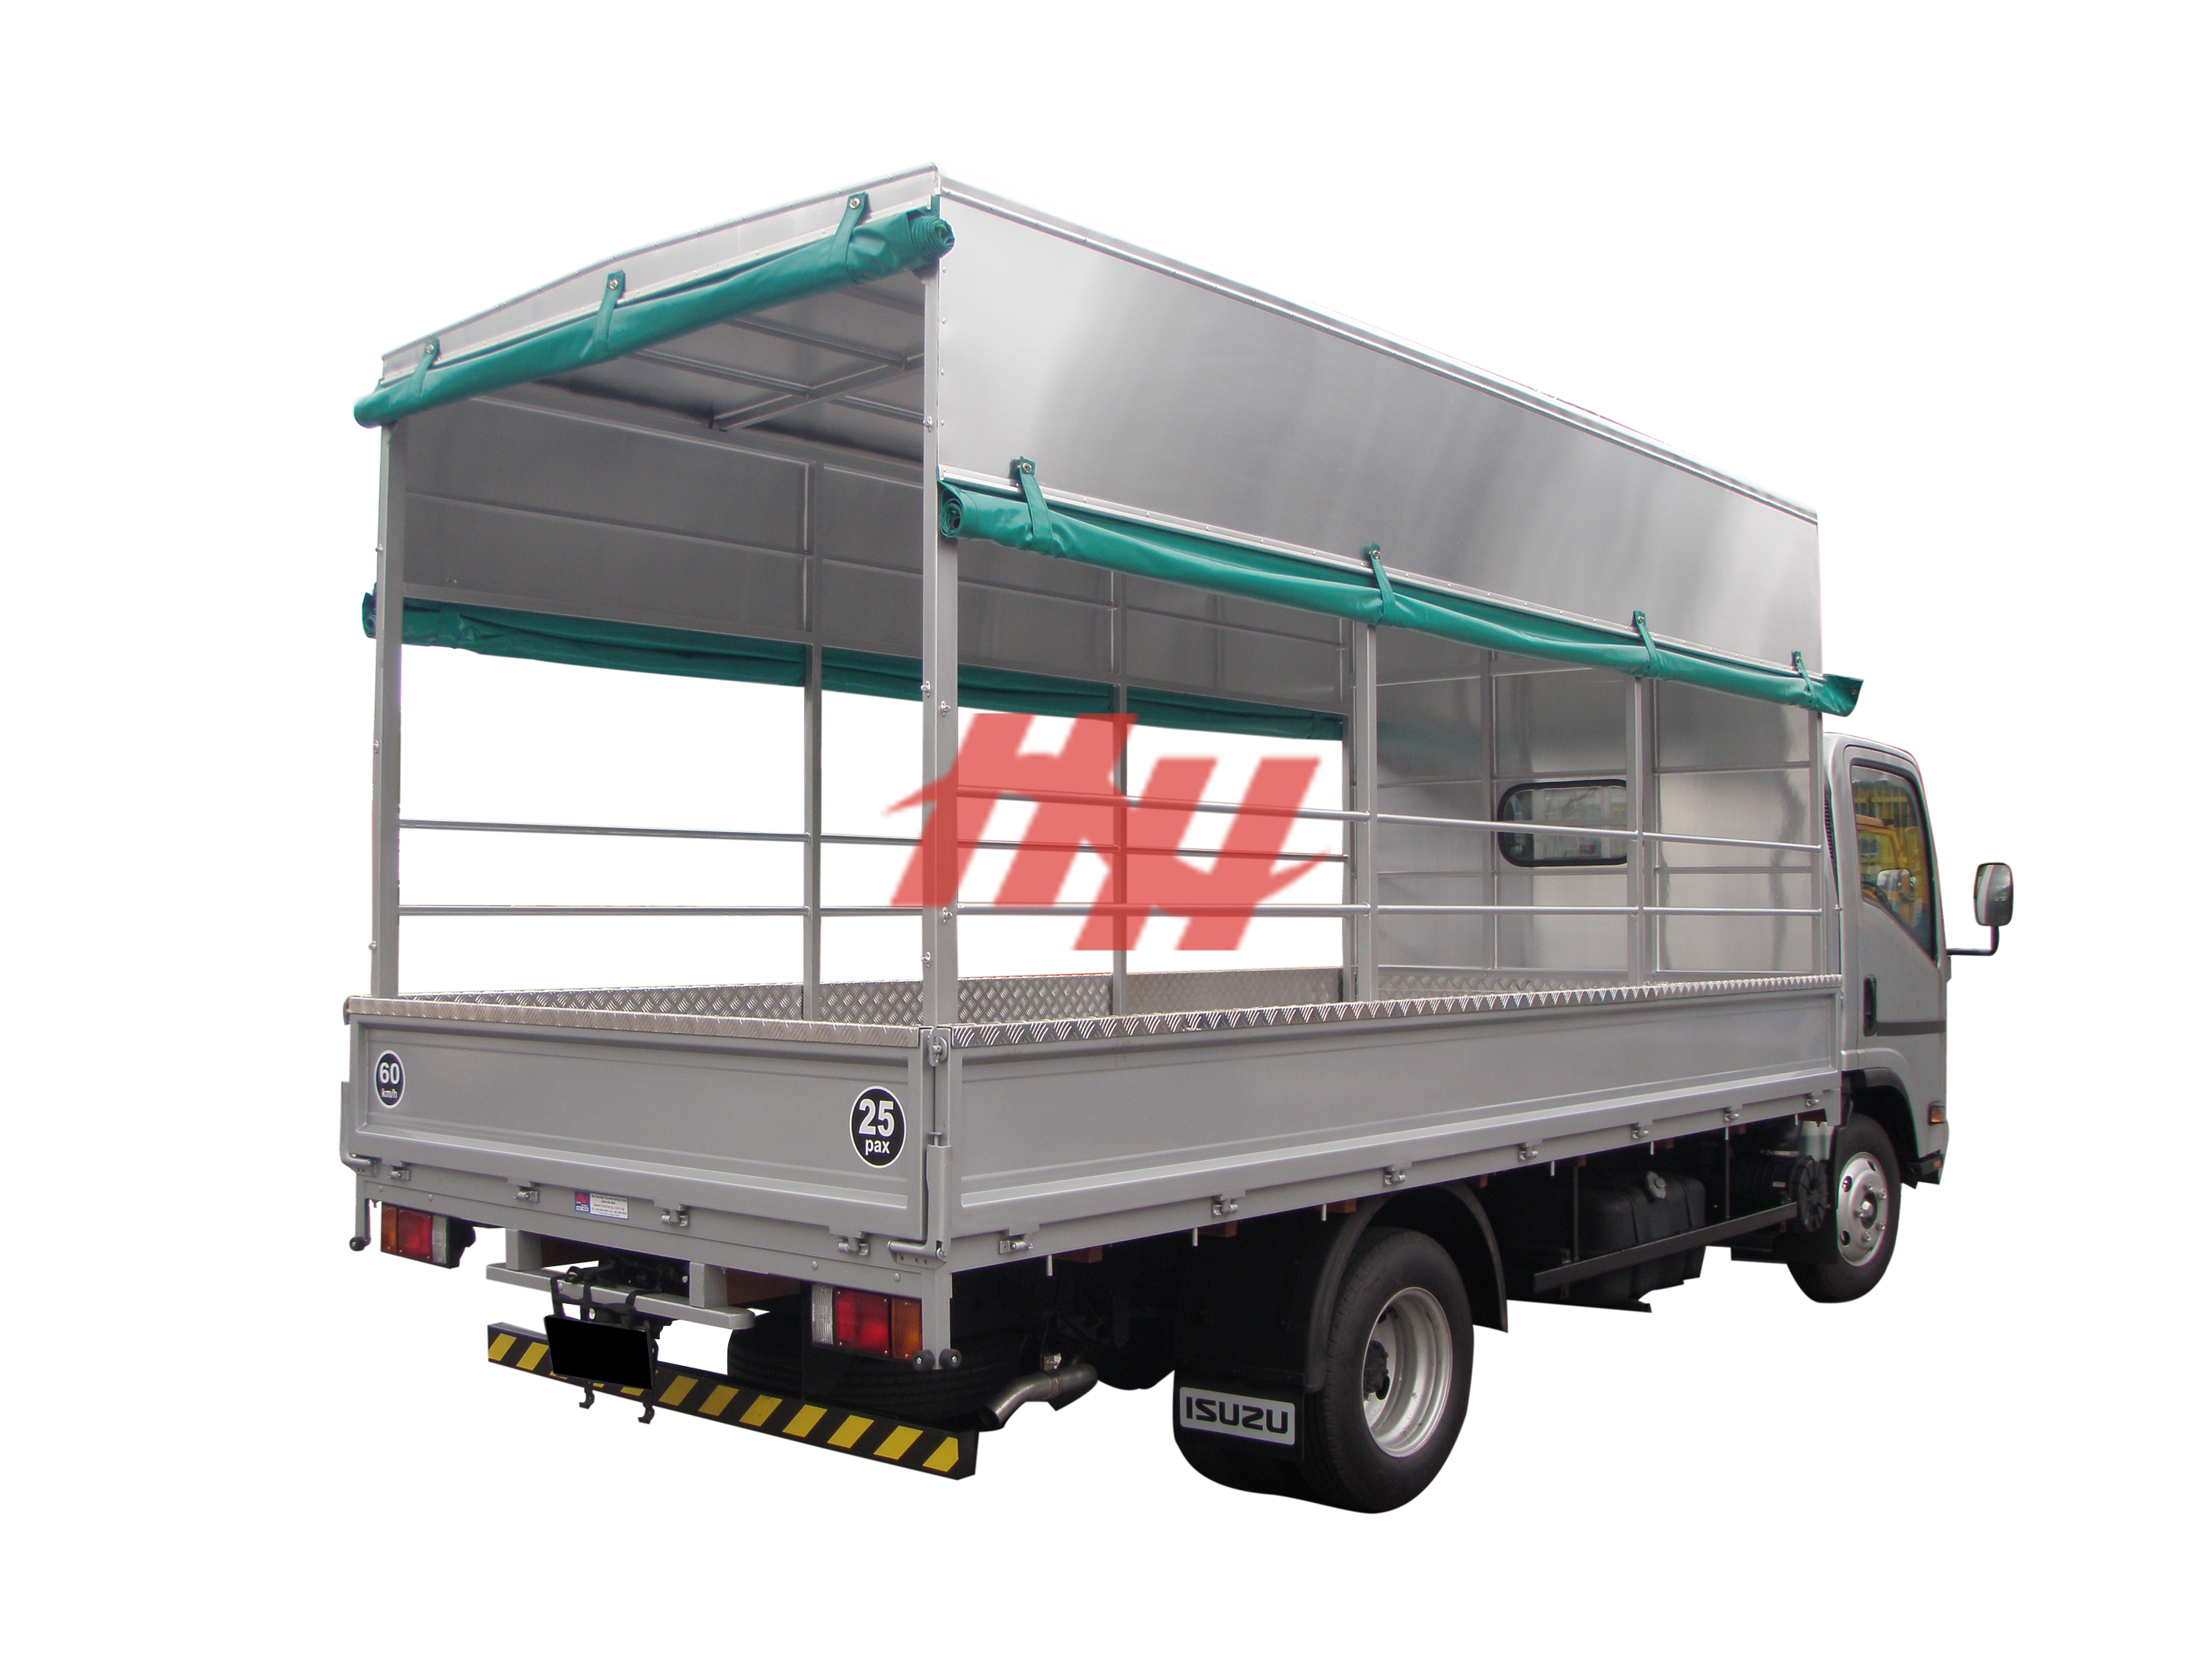 Steel body  high roof full length canopy with roll down canvas  side pannel and steel railing edit